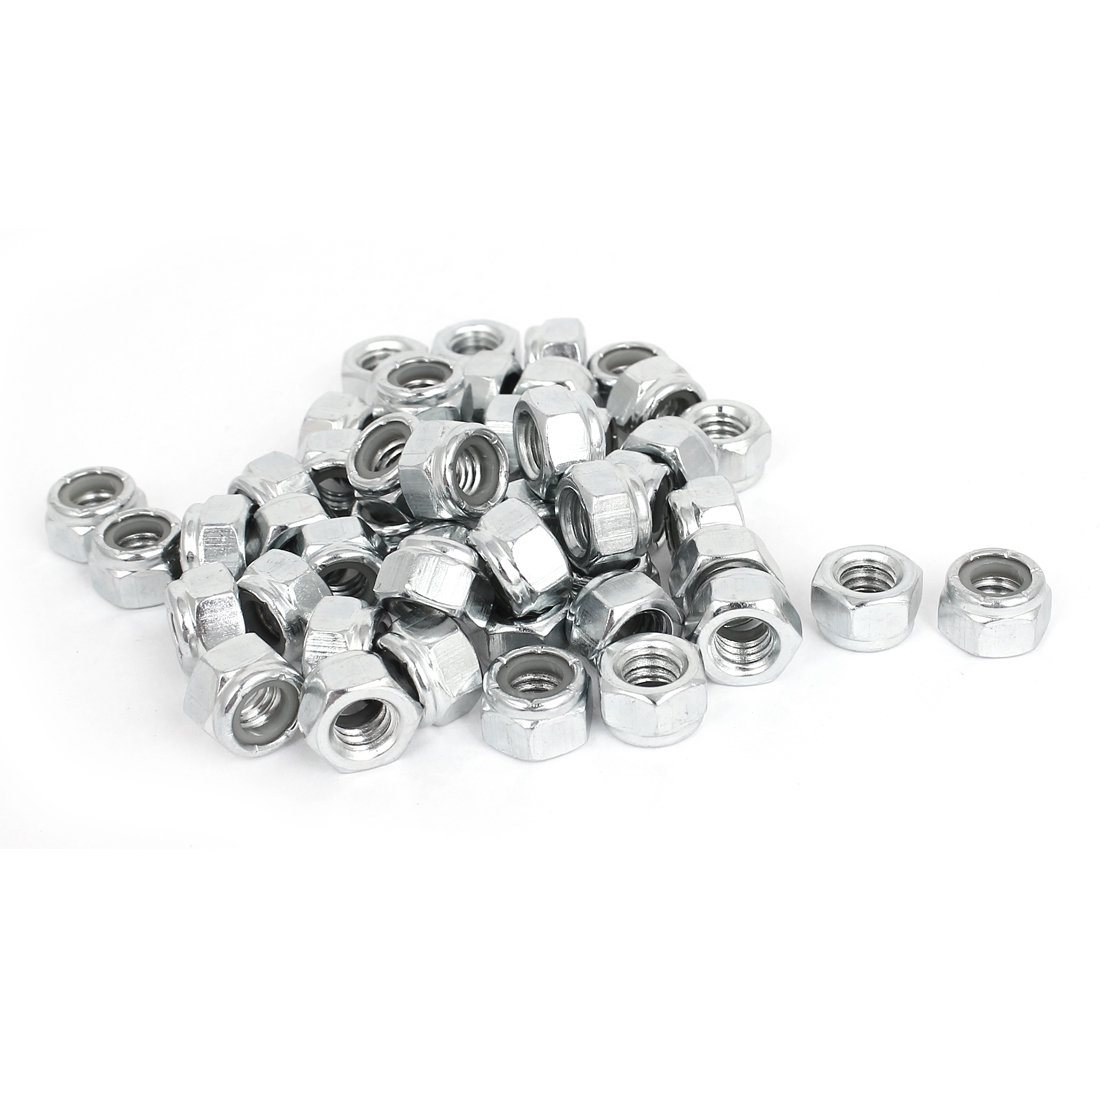 "50pcs Zinc Plated Nylock Self-Locking Nylon Insert Hex Lock Nuts 5/16""-18"